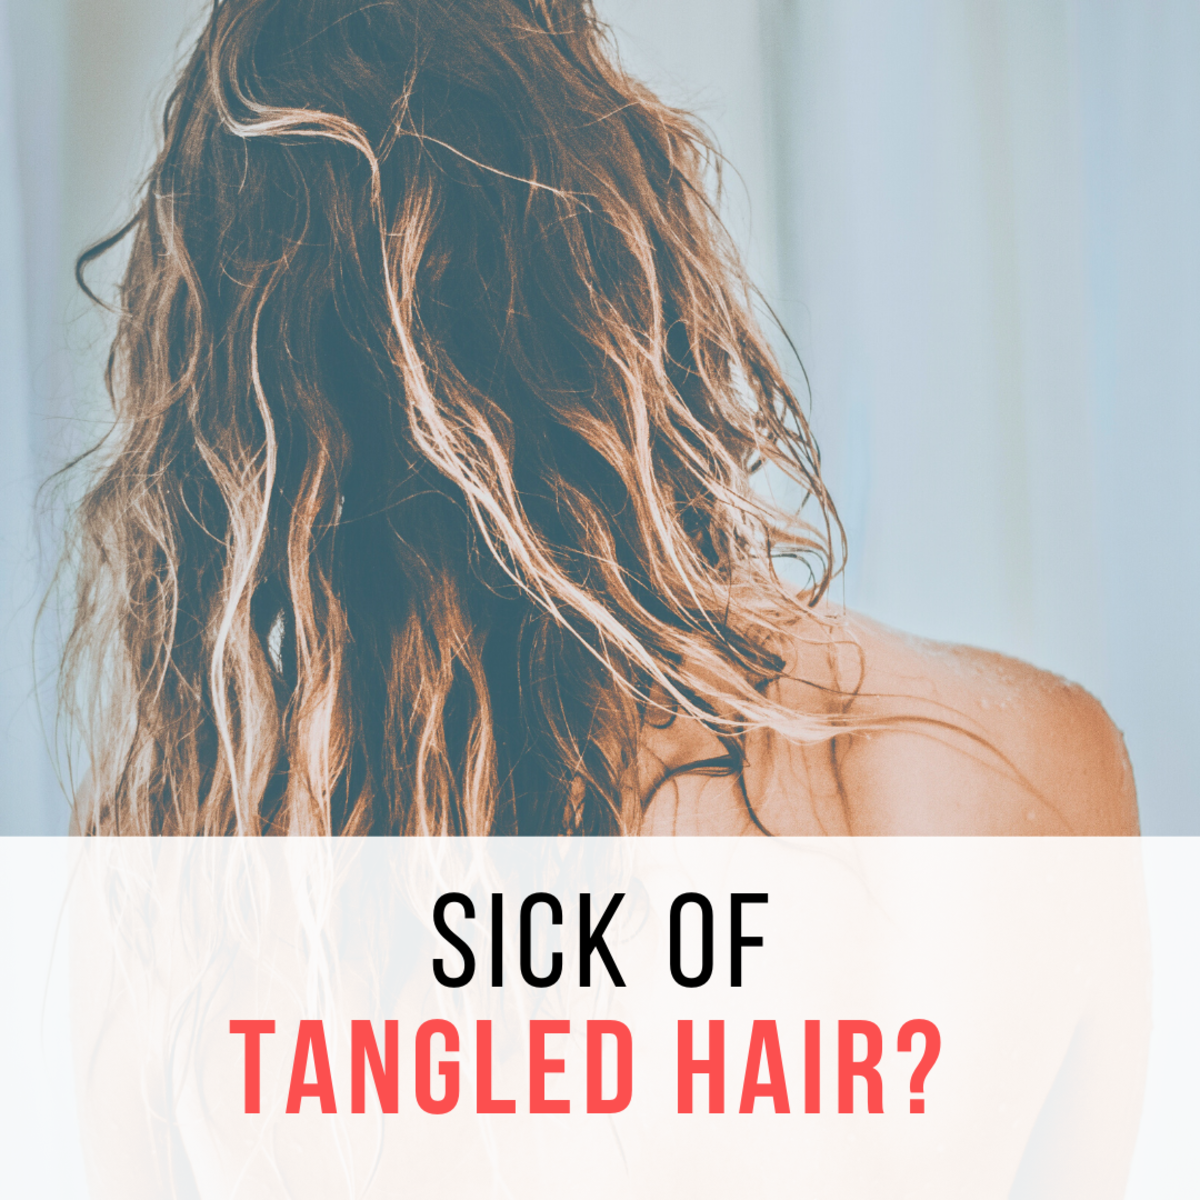 Untangling your hair doesn't have to be a pain if you follow these tips.